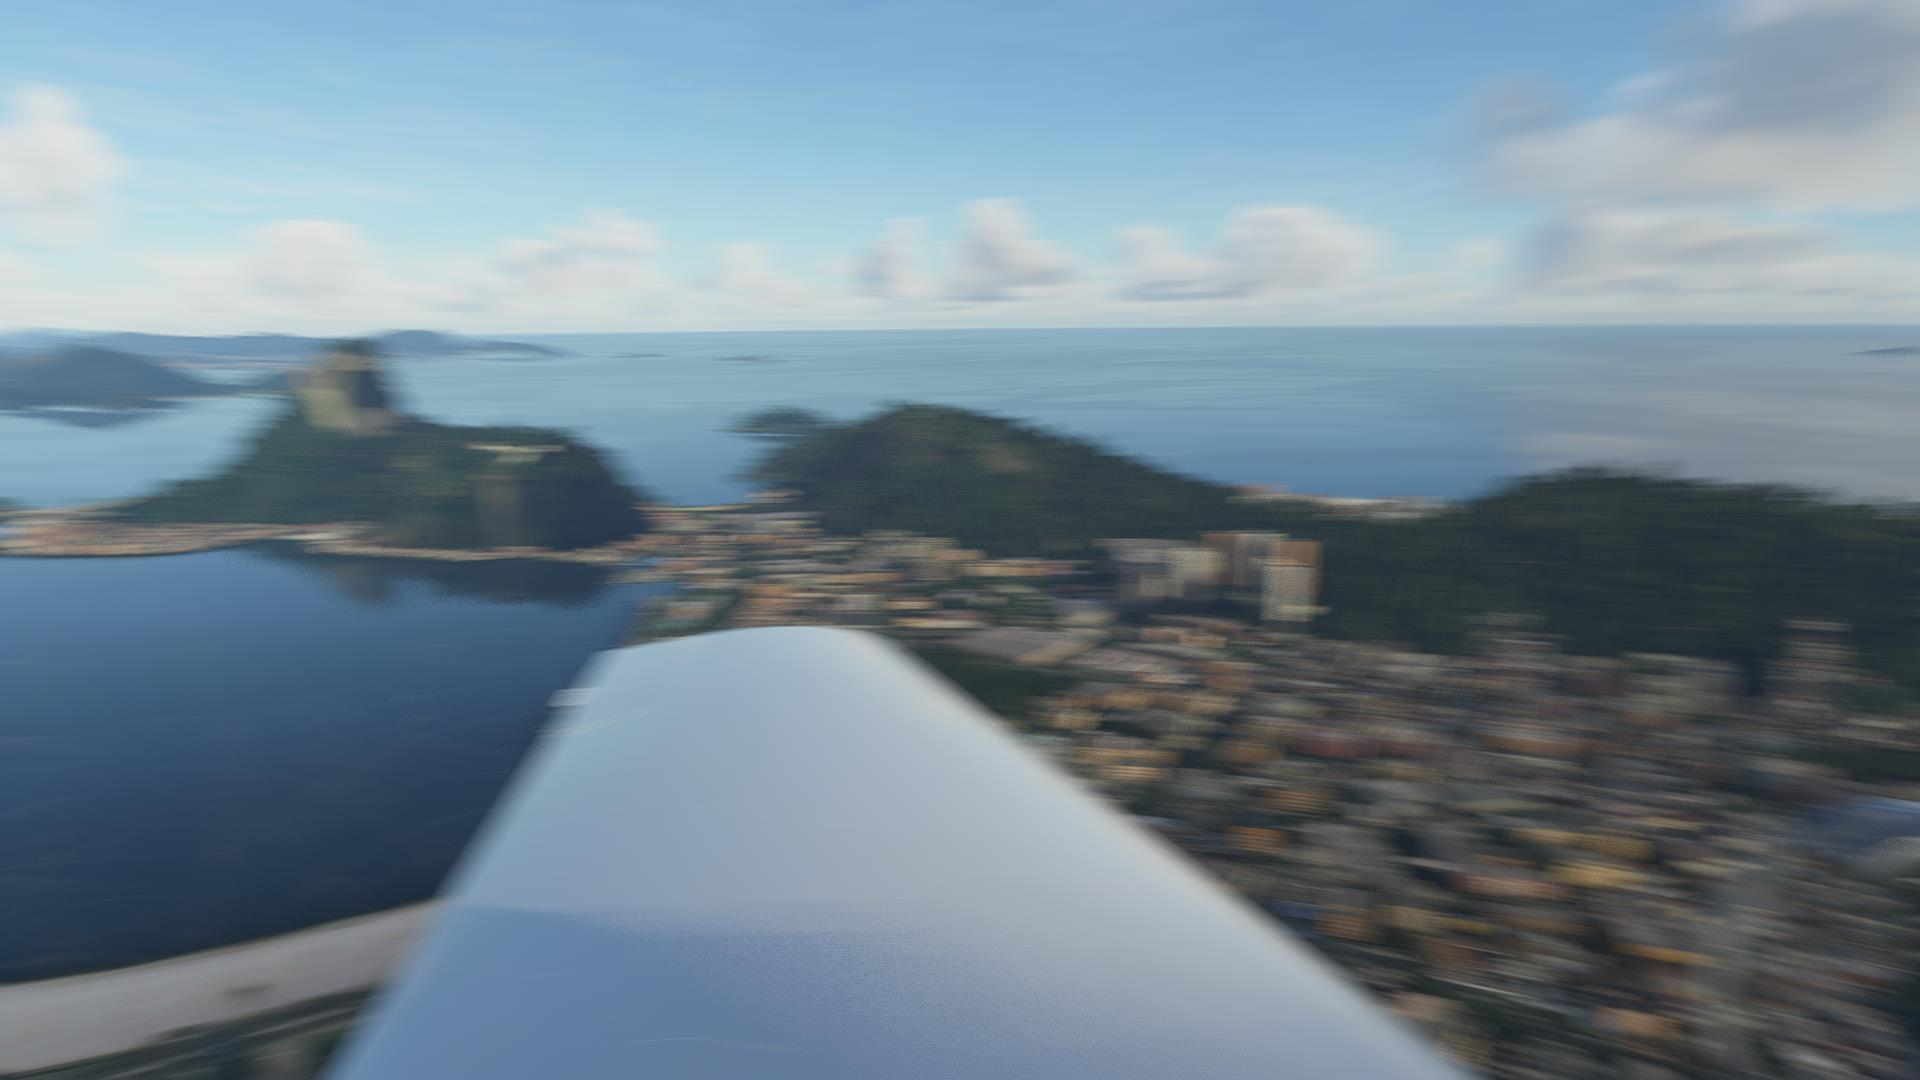 https://vivendobyte.blob.core.windows.net/57793/Microsoft Flight Simulator 13_01_2021 19_51_44.jpg